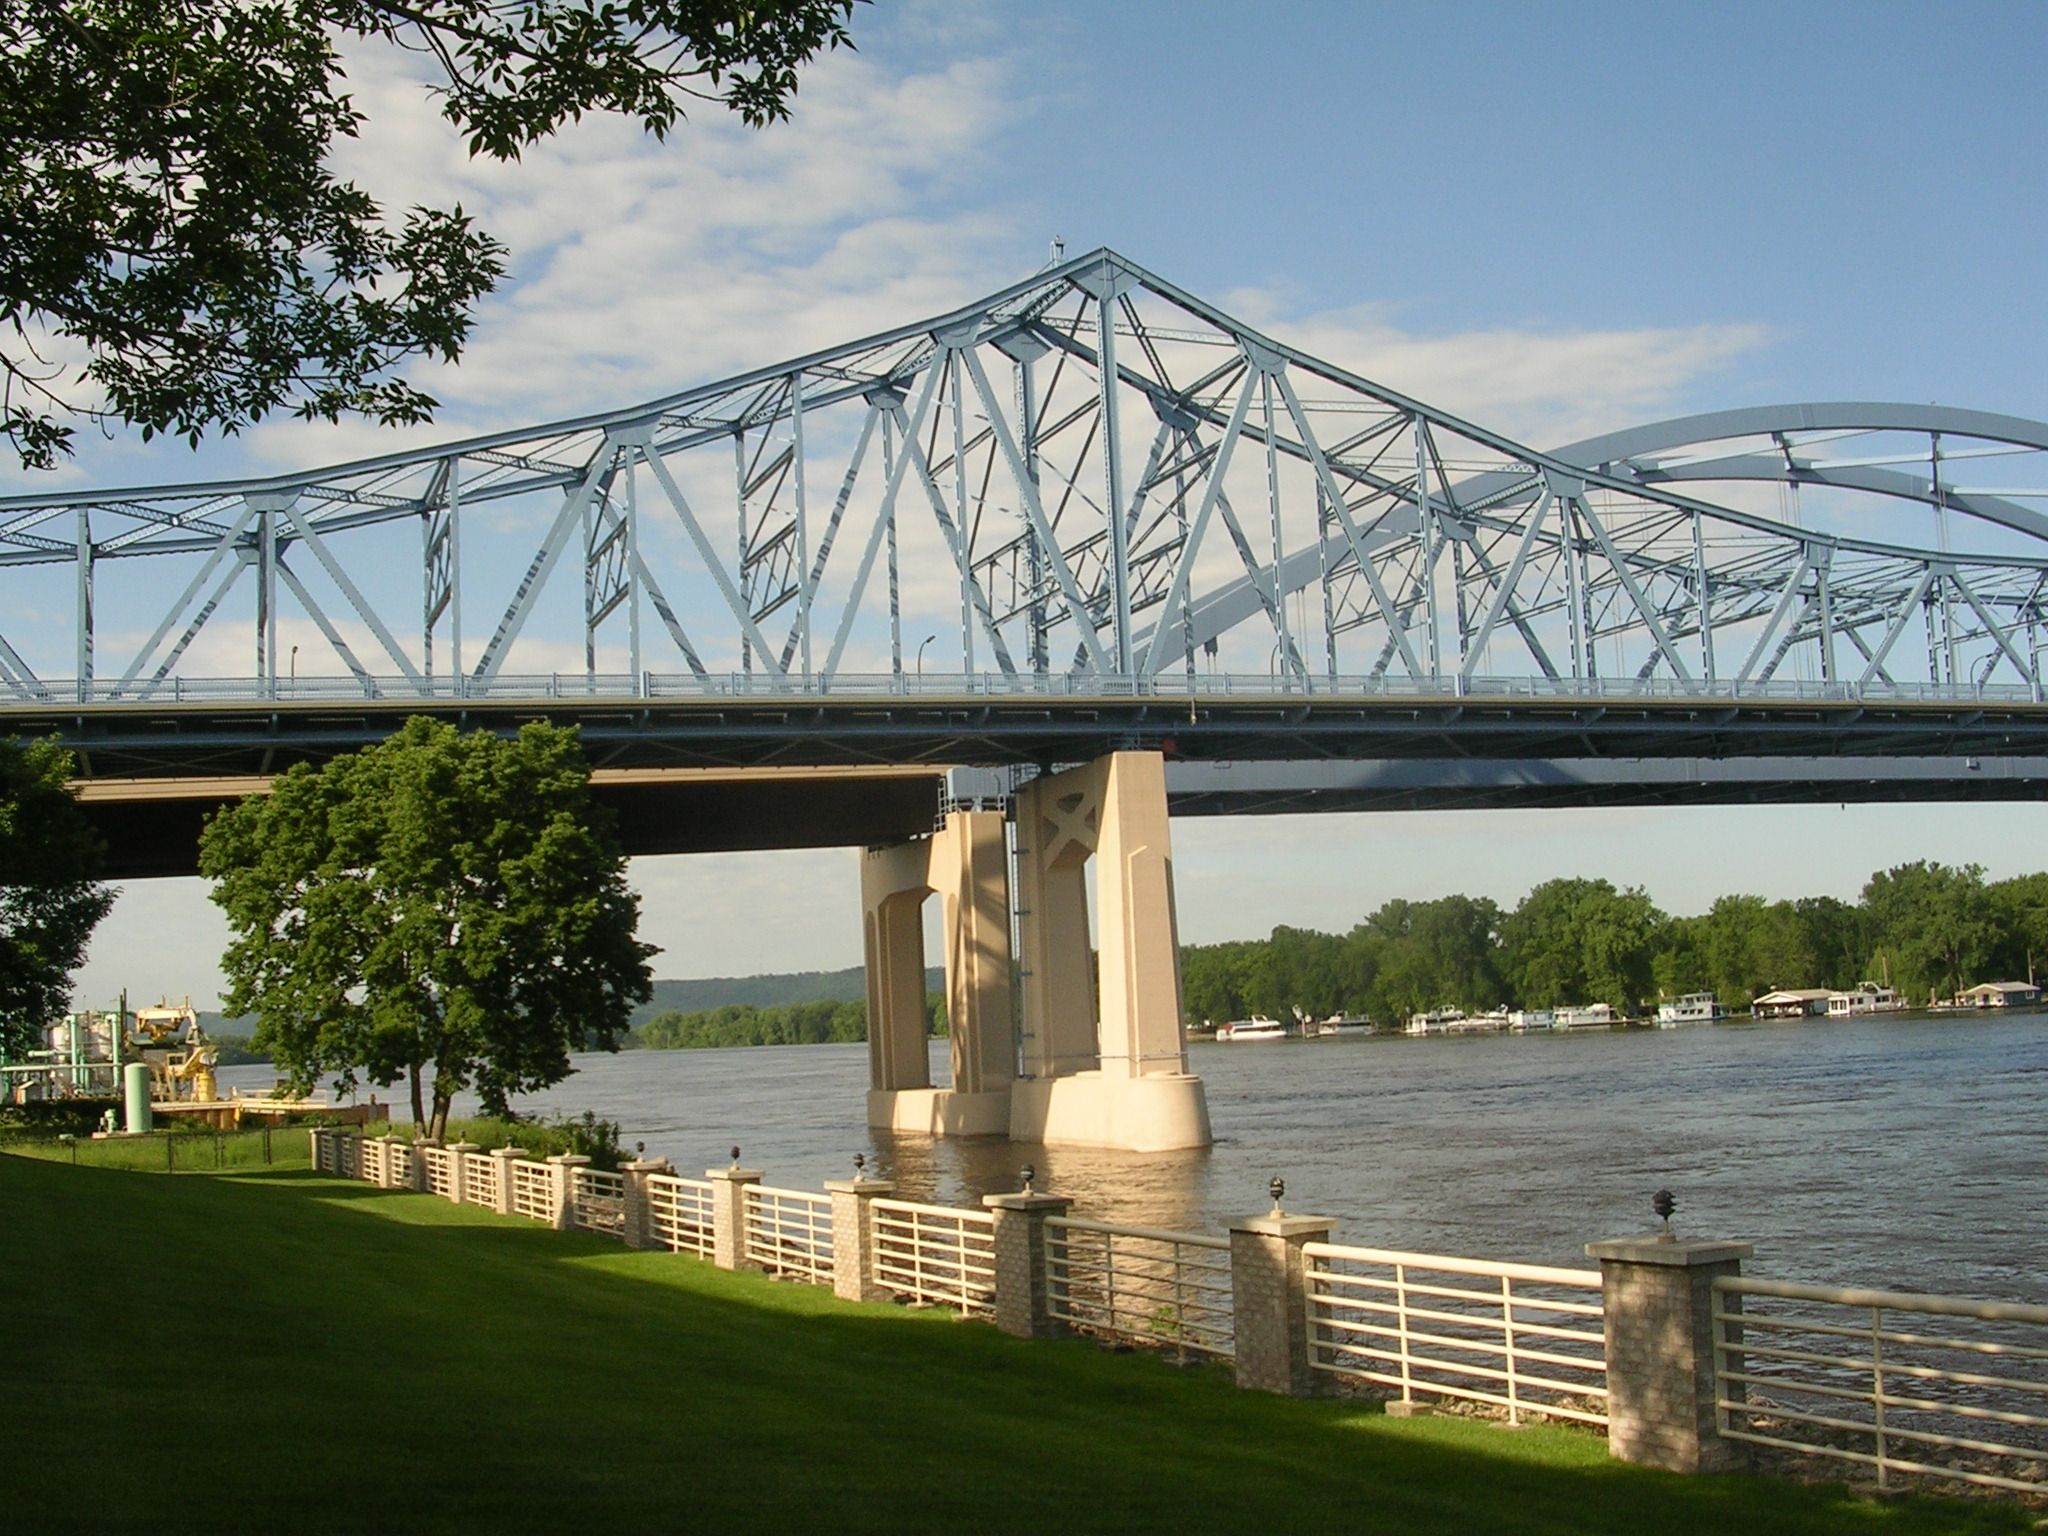 La Crosse, WI - My birthplace. Thank you for staying beautiful LaCrosse. Always proud to say I was born there.